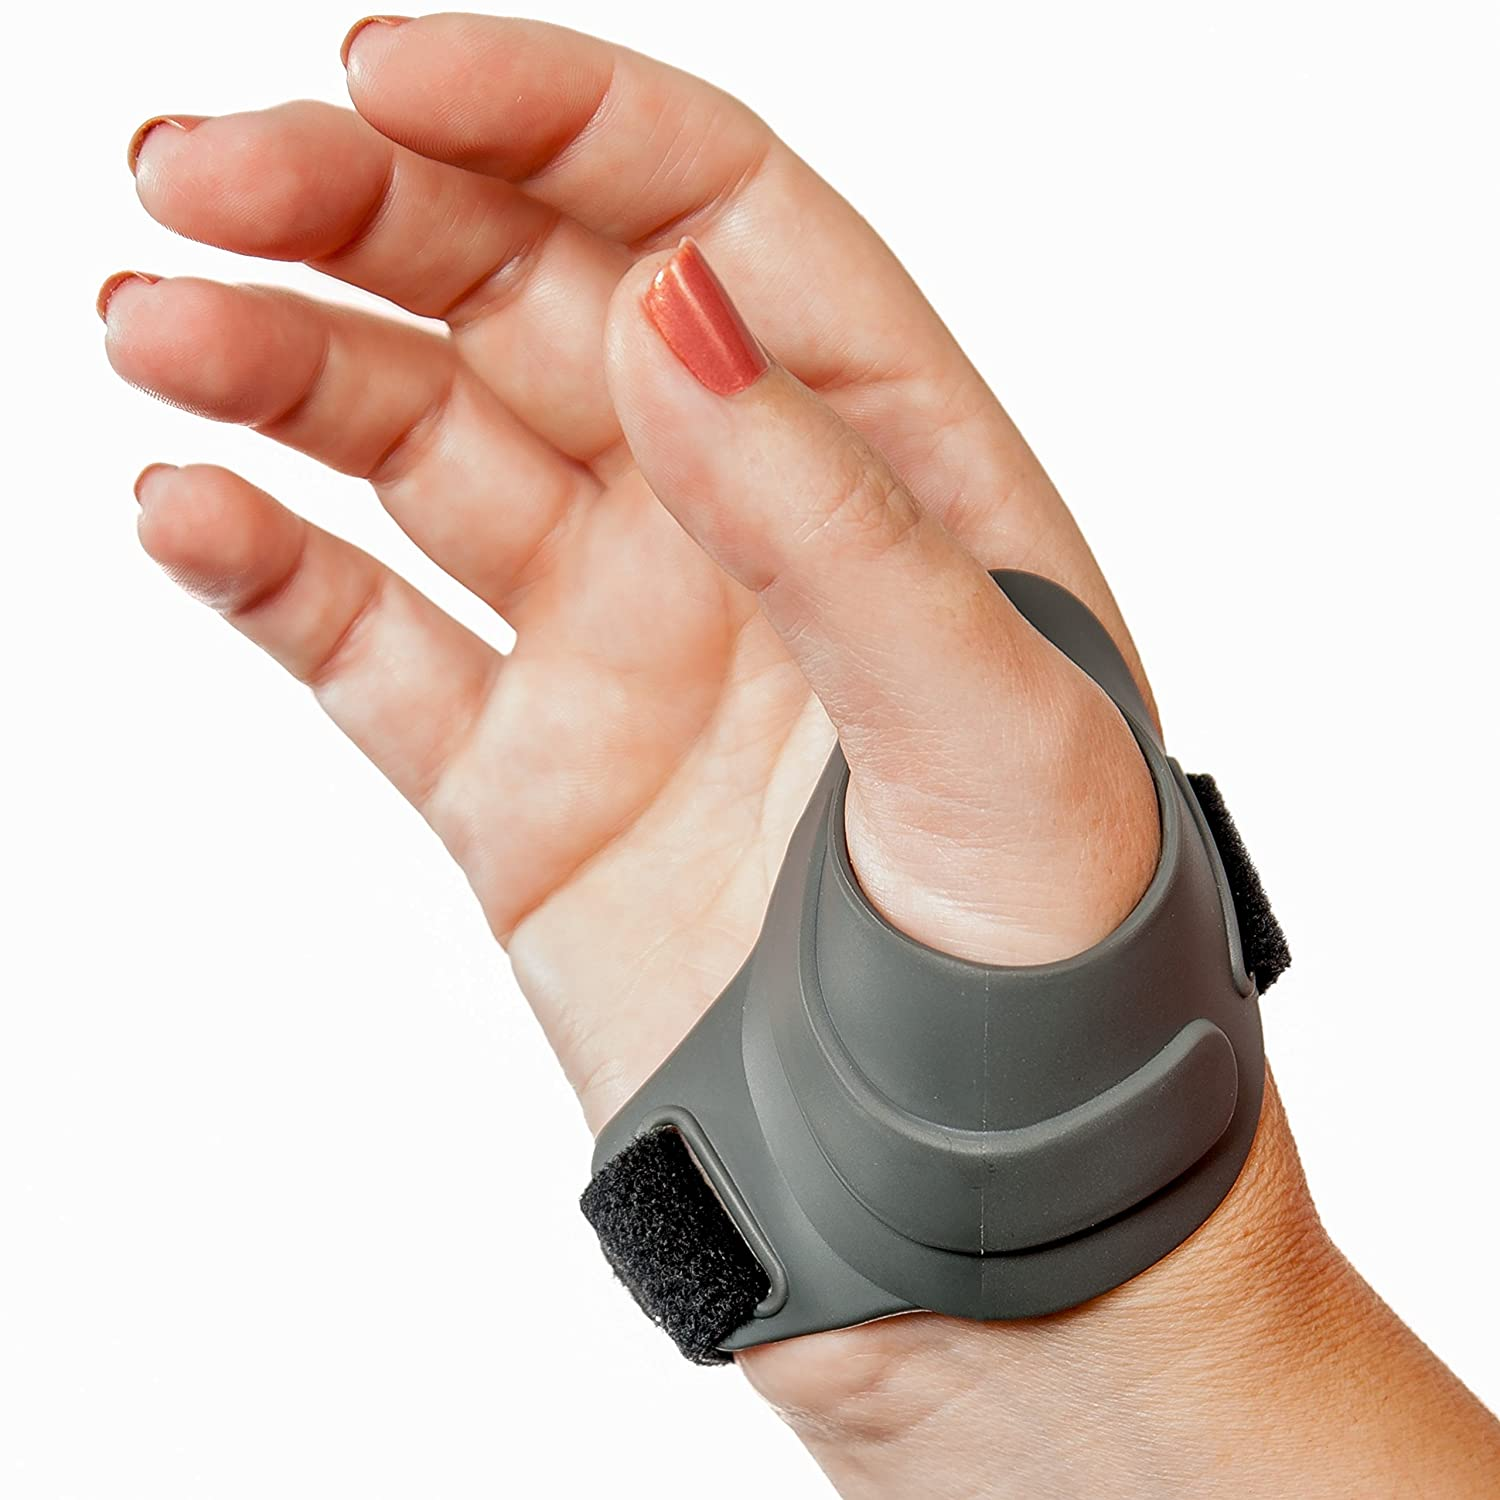 CMCcare Thumb Brace \u2013 Durable, Waterproof Brace for Thumb Arthritis Pain  Relief, Right Hand, Size Large